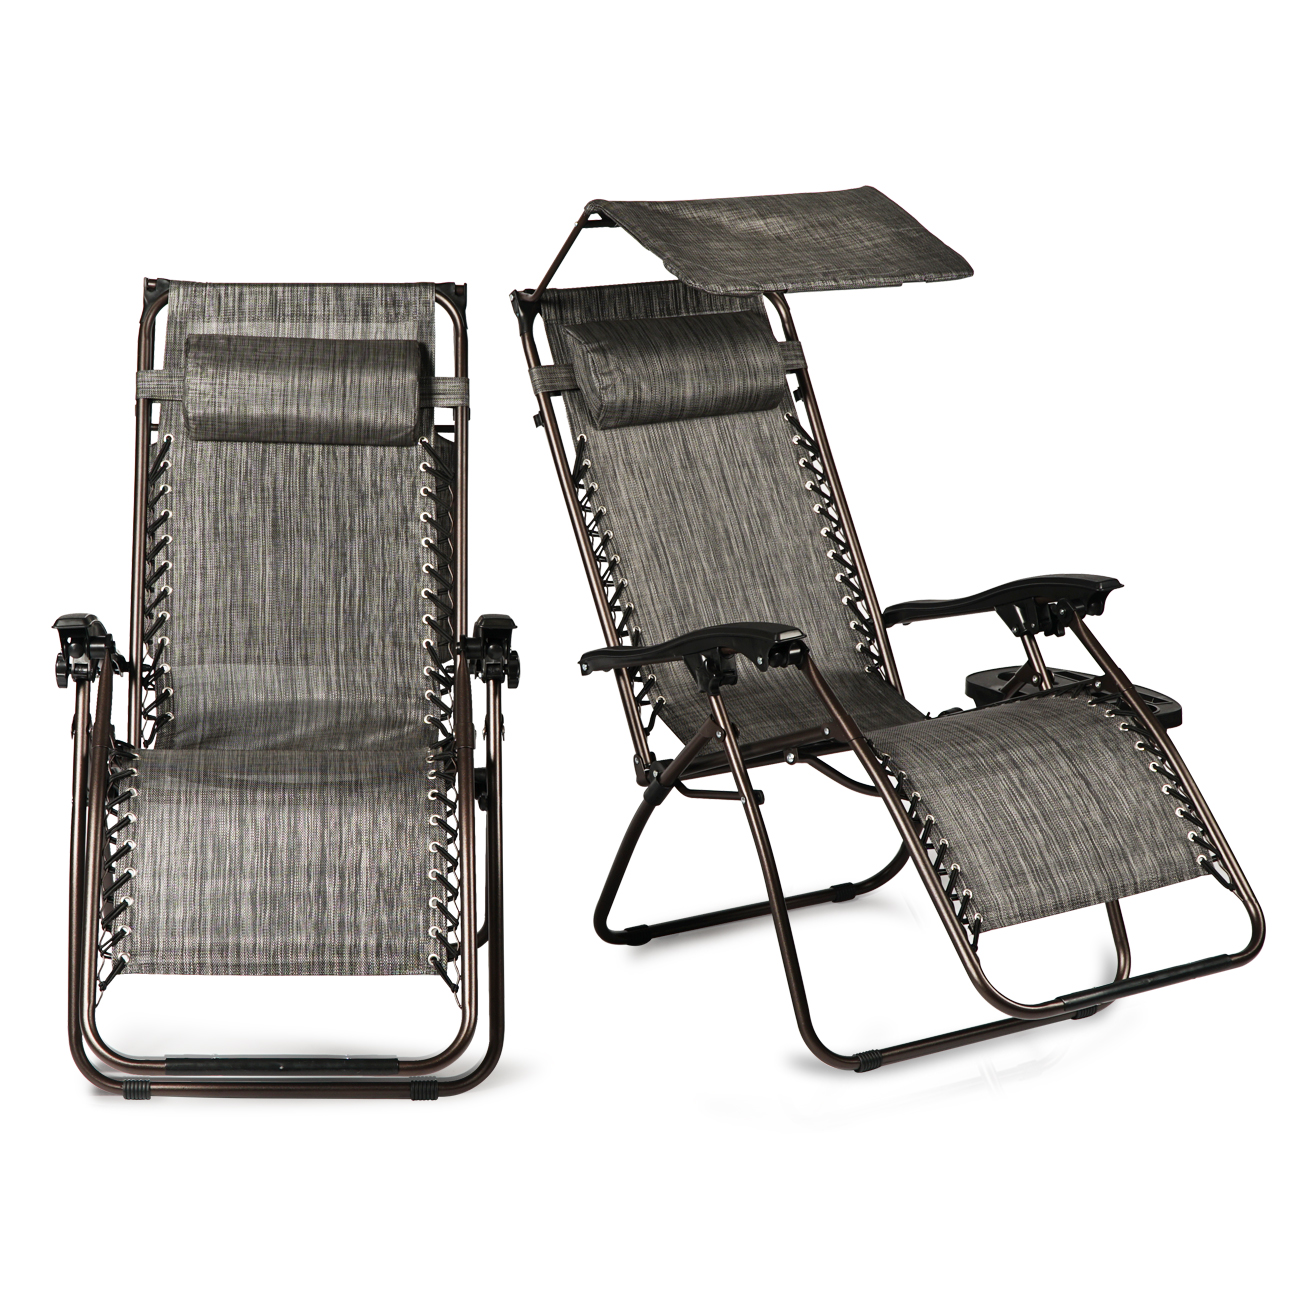 BELLEZE 2PC Zero Gravity Chairs Recliner IPhone & IPad Slots Reclining Headrest w/ Canopy Shade, Gray